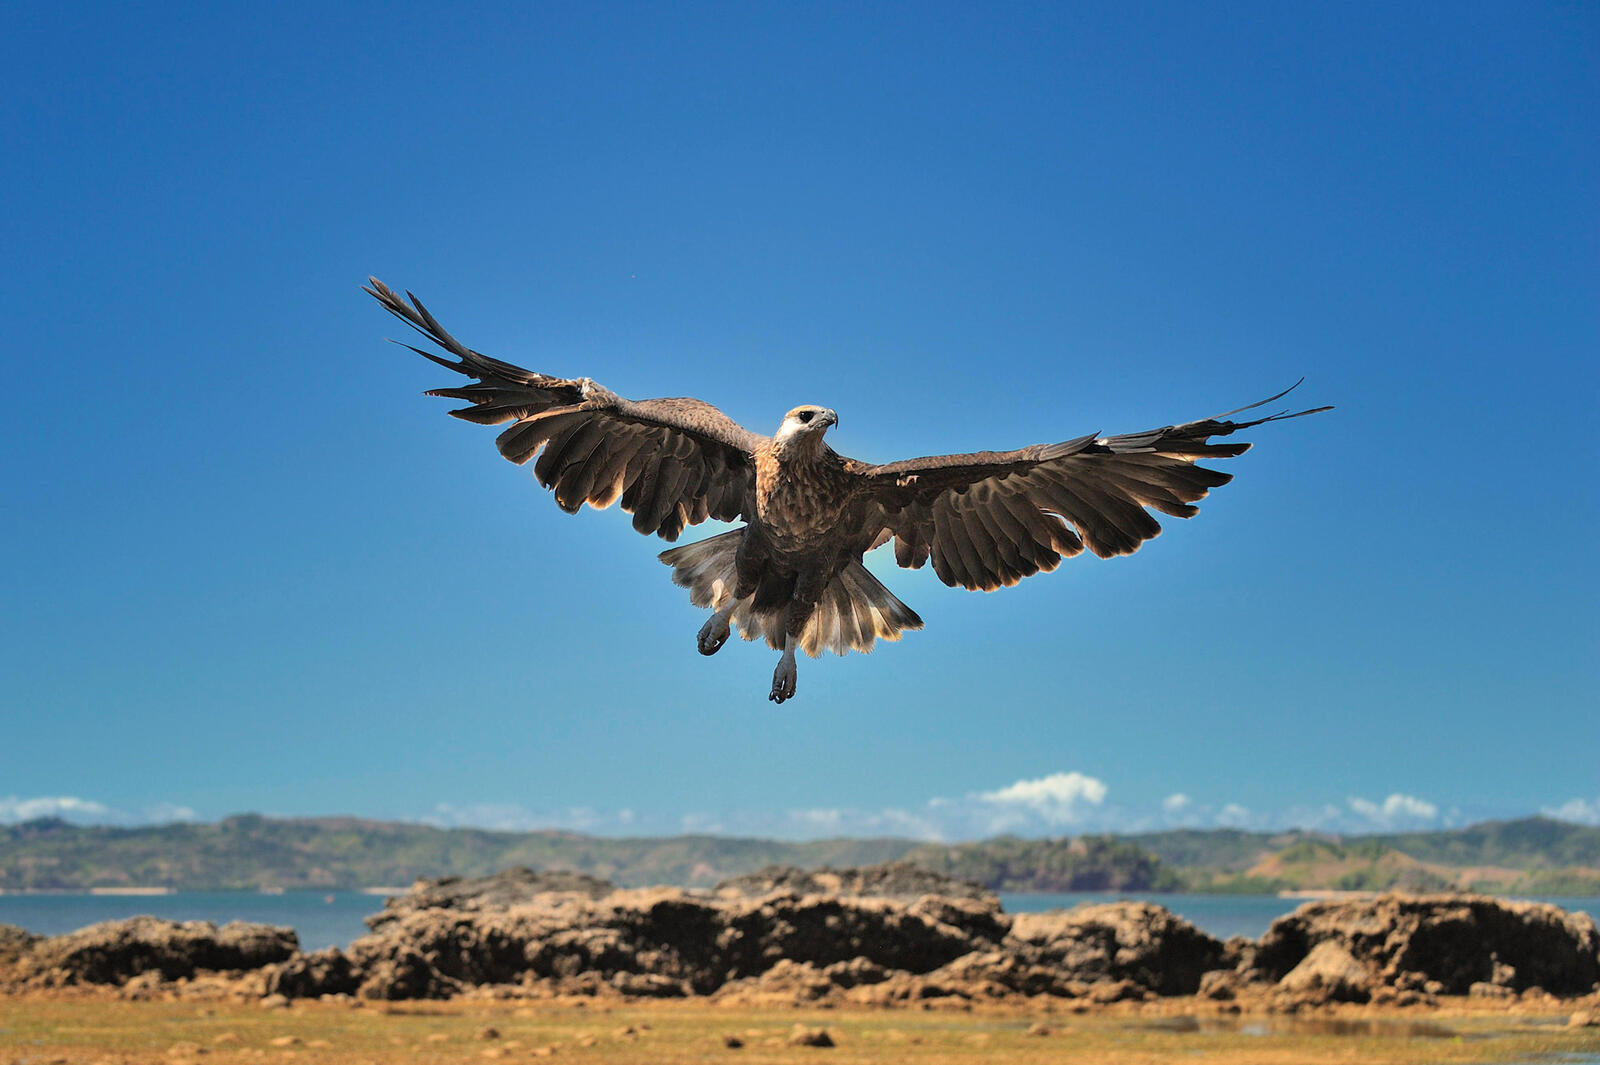 Madagascar fish eagle with wings spread